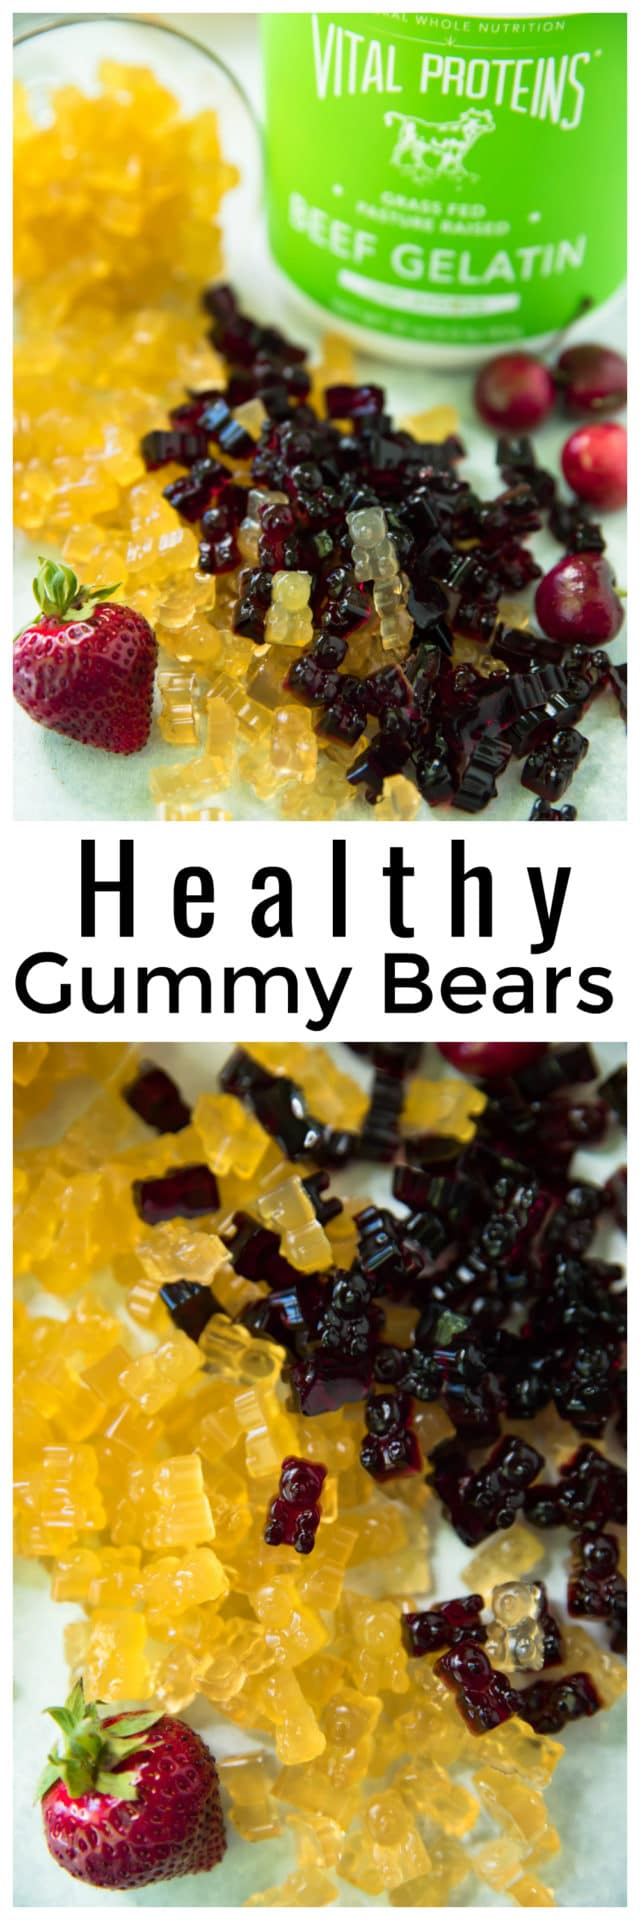 Healthy Gummy Bears Three Flavors Apple Strawberry Lemonade Tart Cherry Kim S Cravings Seriously though, i've made this one over and over and over again to get it right. healthy gummy bears three flavors